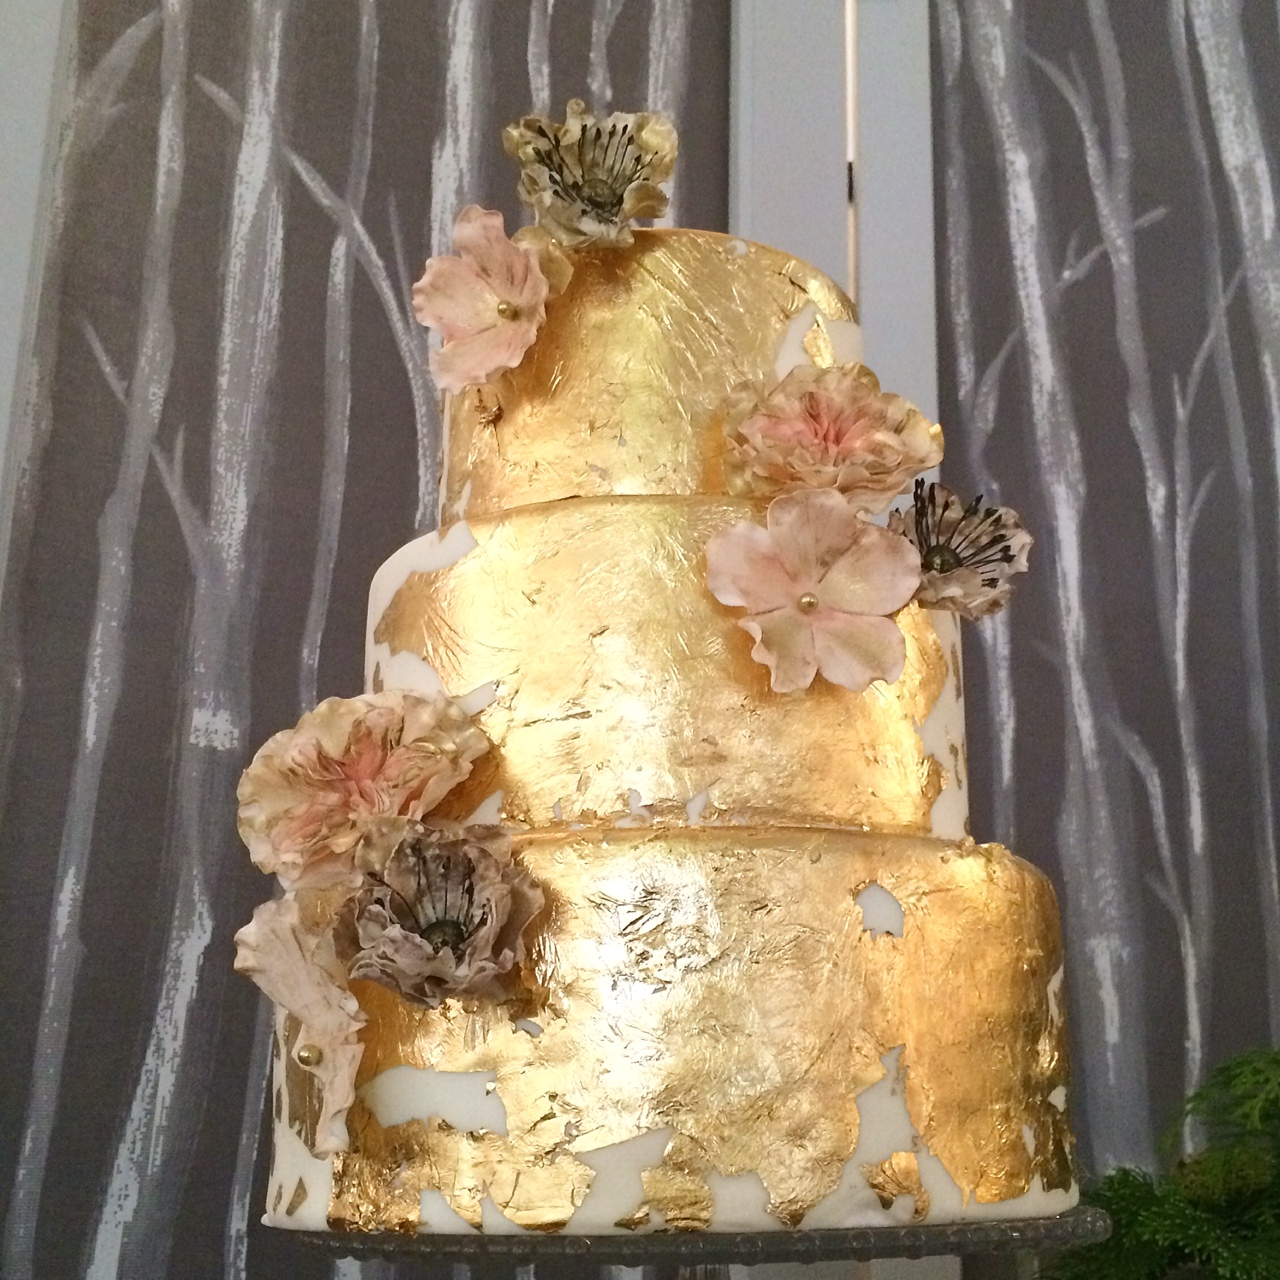 Gold leaf and sugar flowers